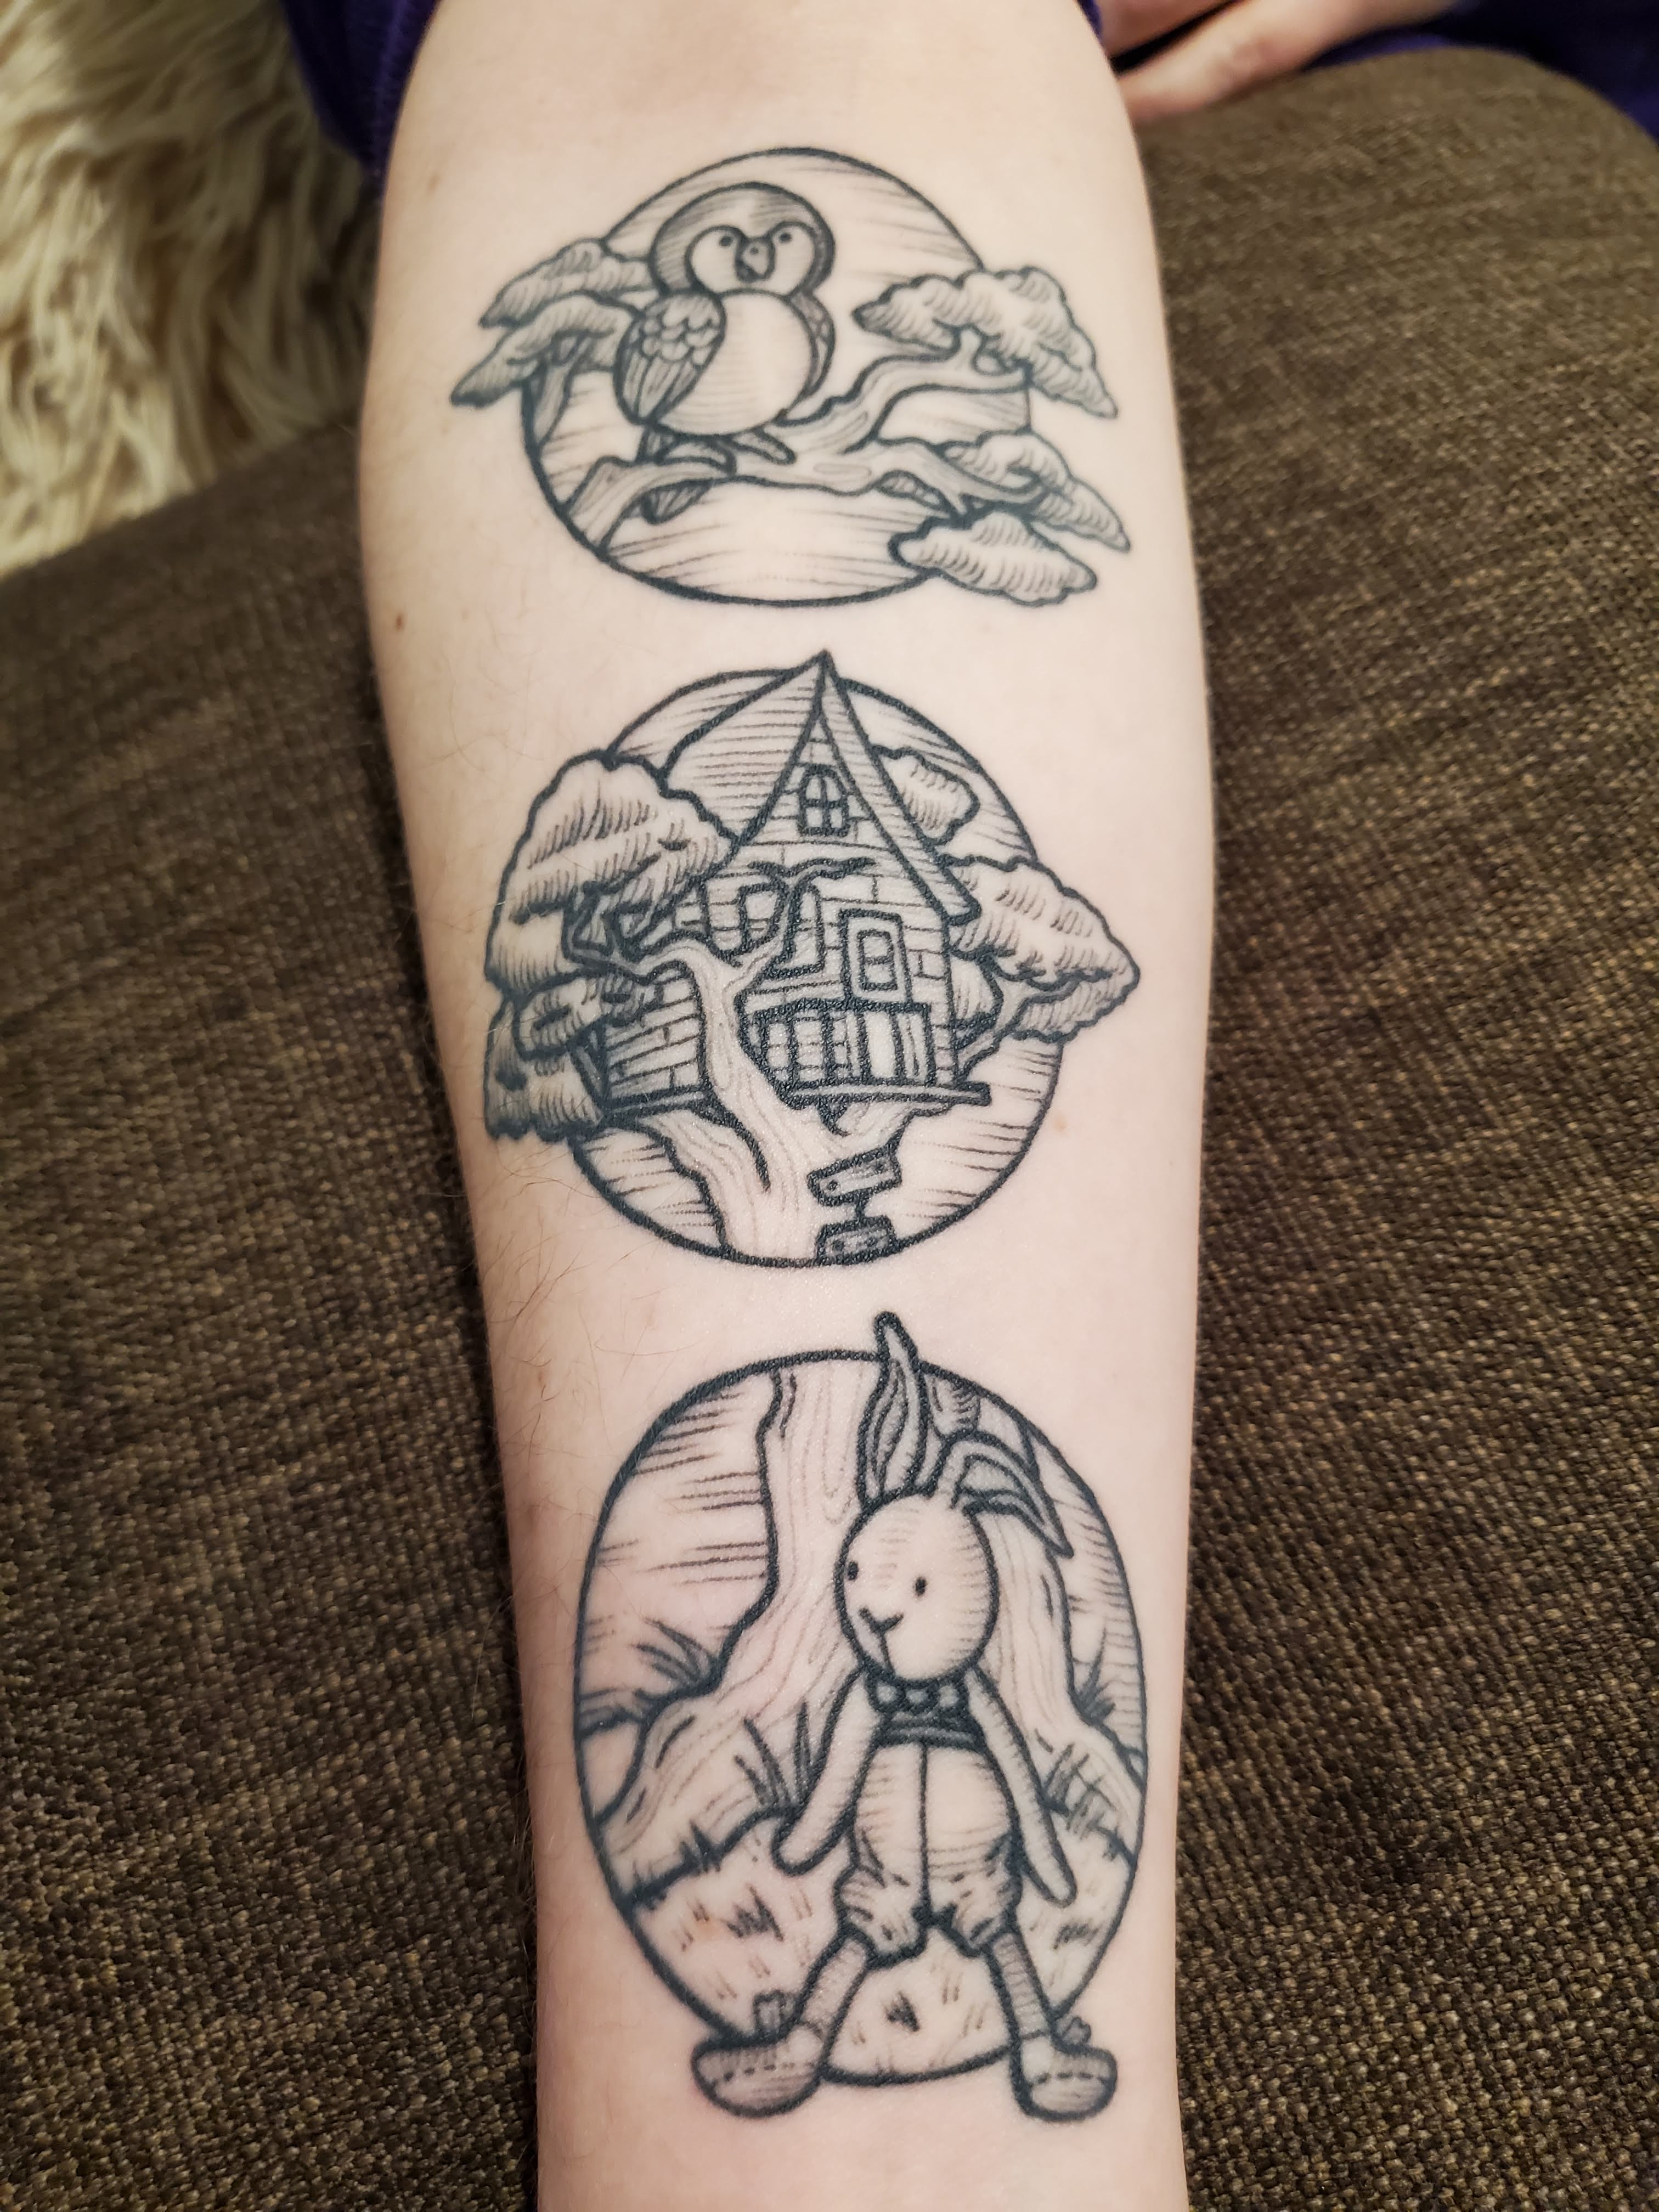 black line tattoo of an owl, a treehouse and a toy rabbit